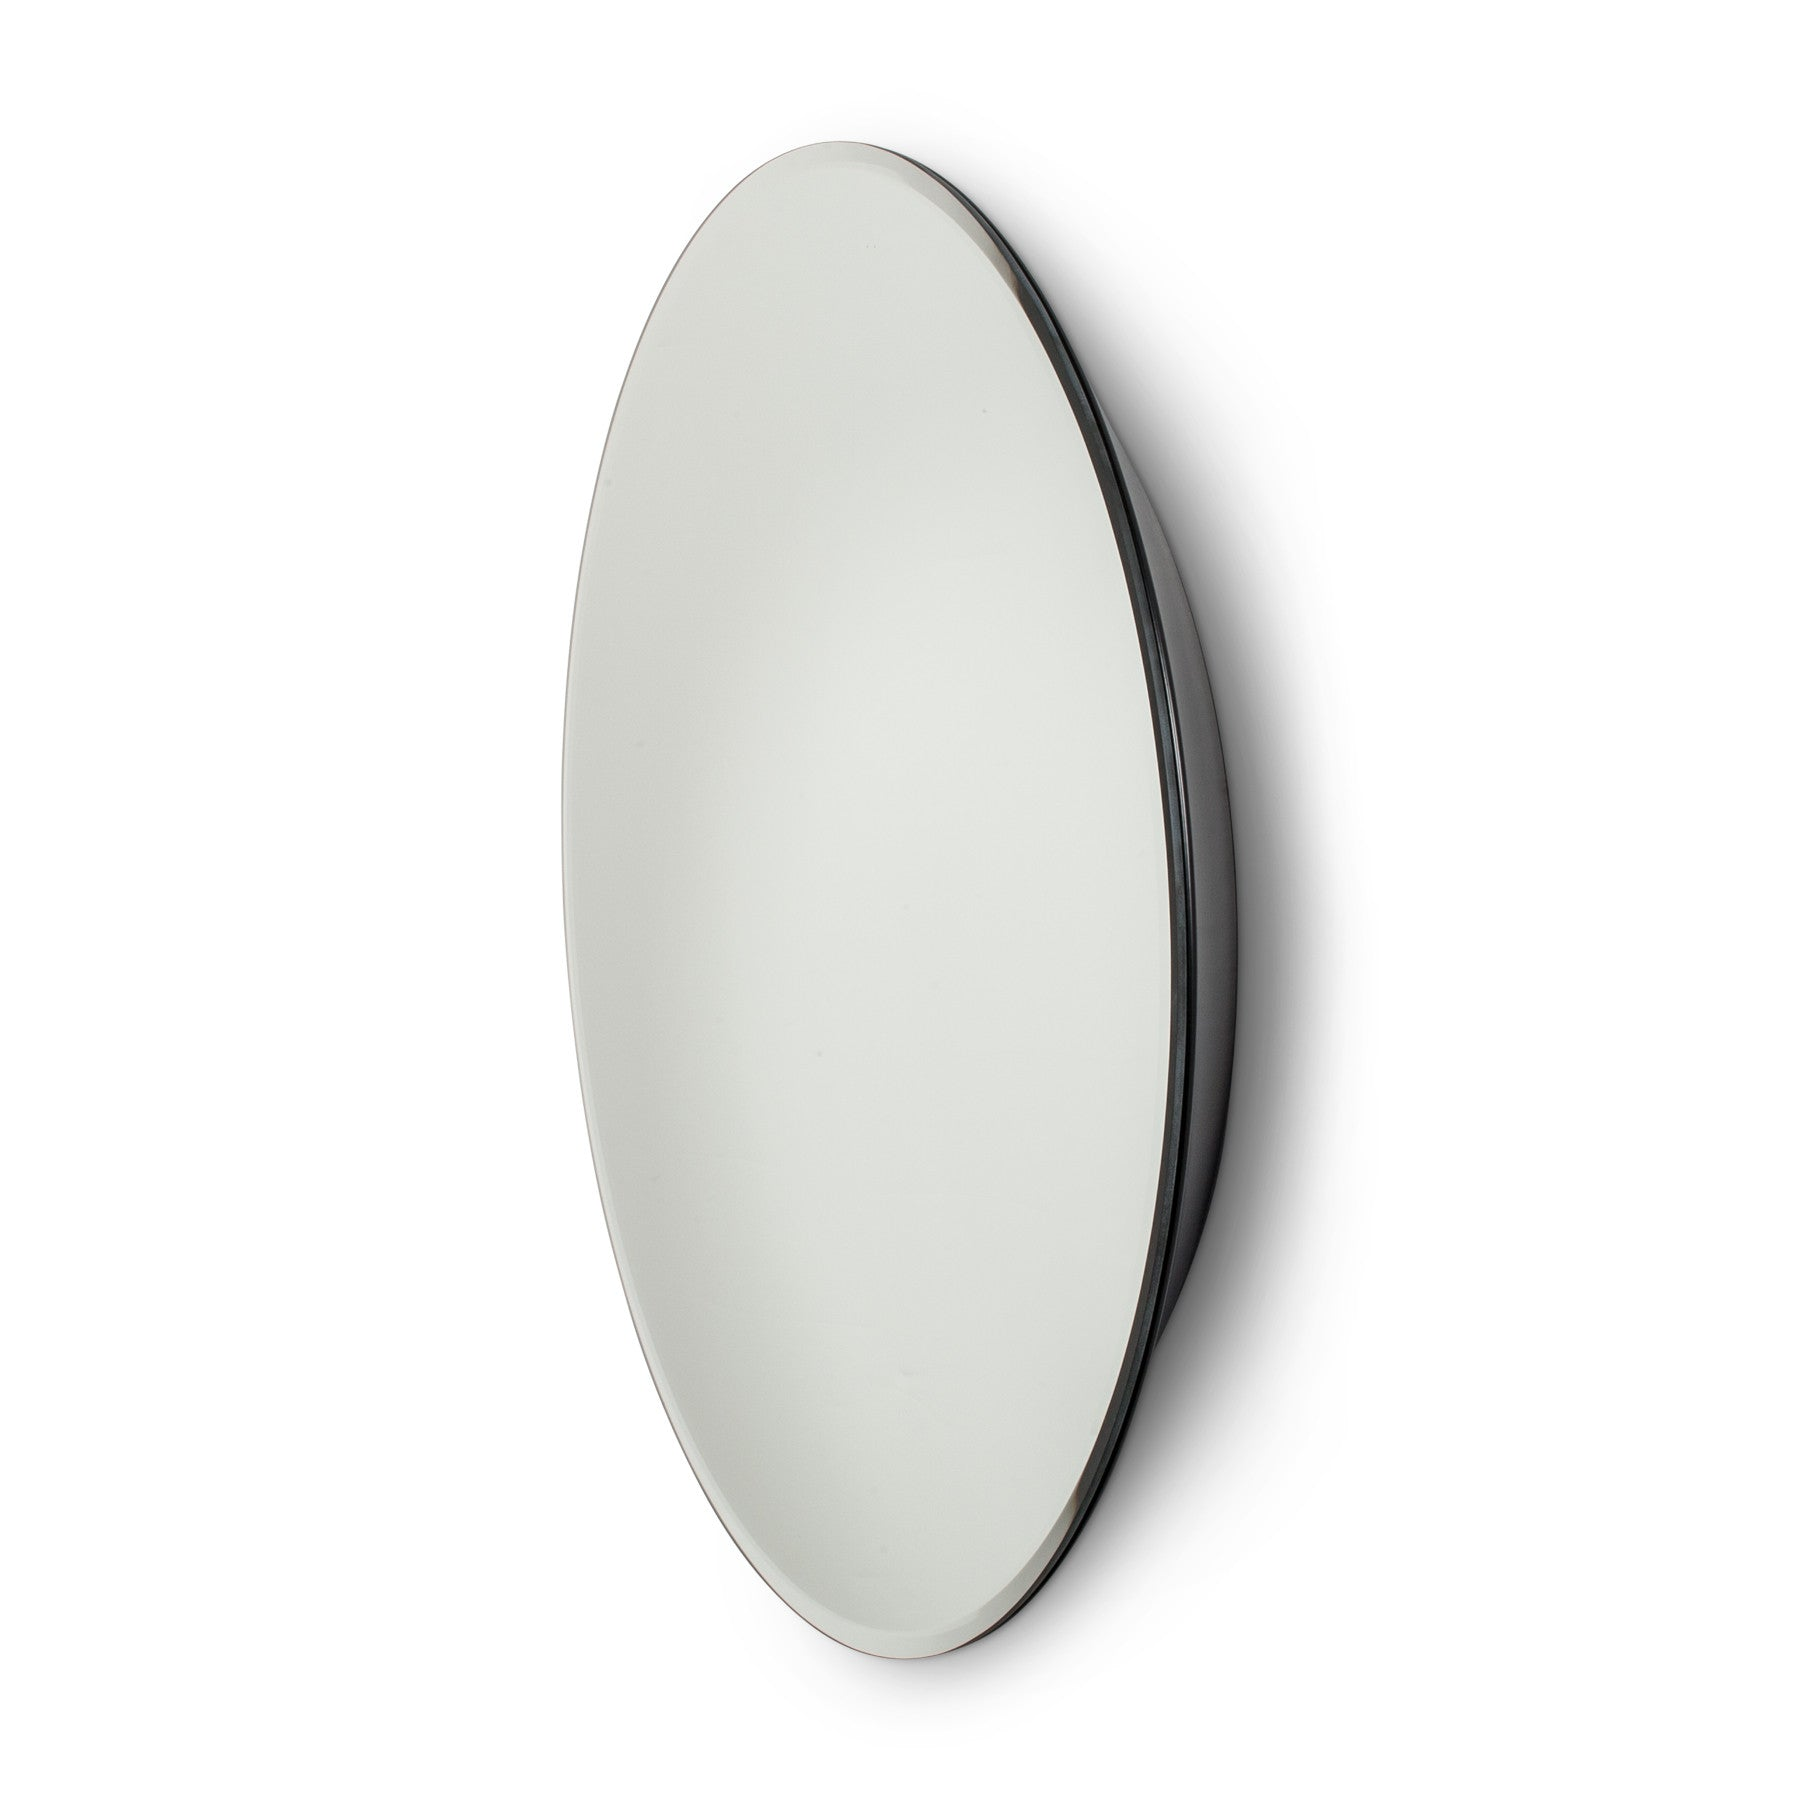 20 Glass Small Round Floating Wall Mirror